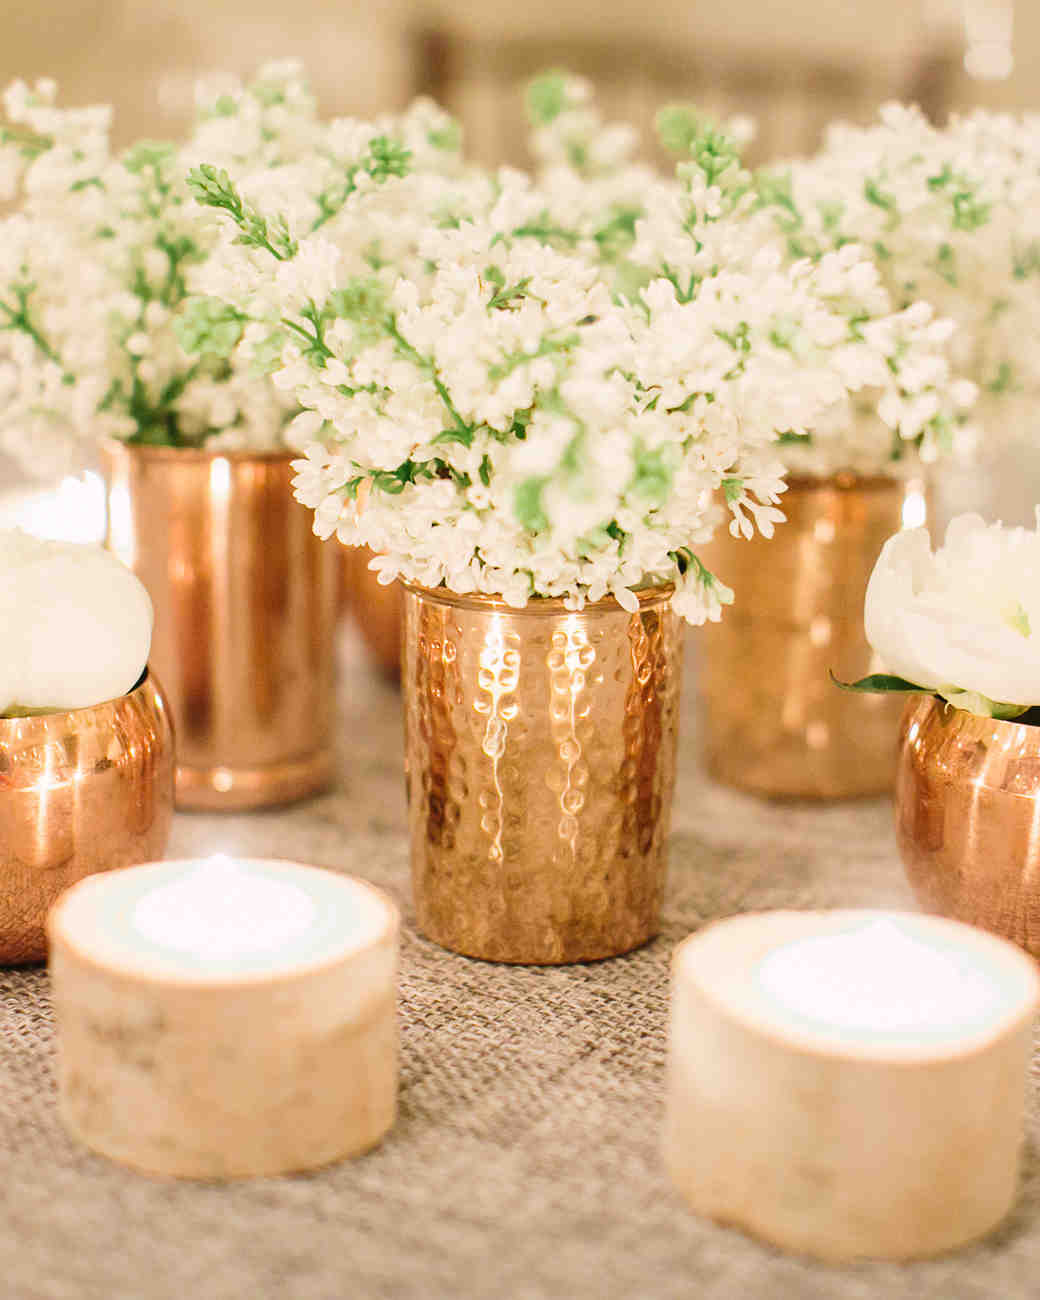 19 Tips For Throwing The Ultimate Winter Bridal Shower